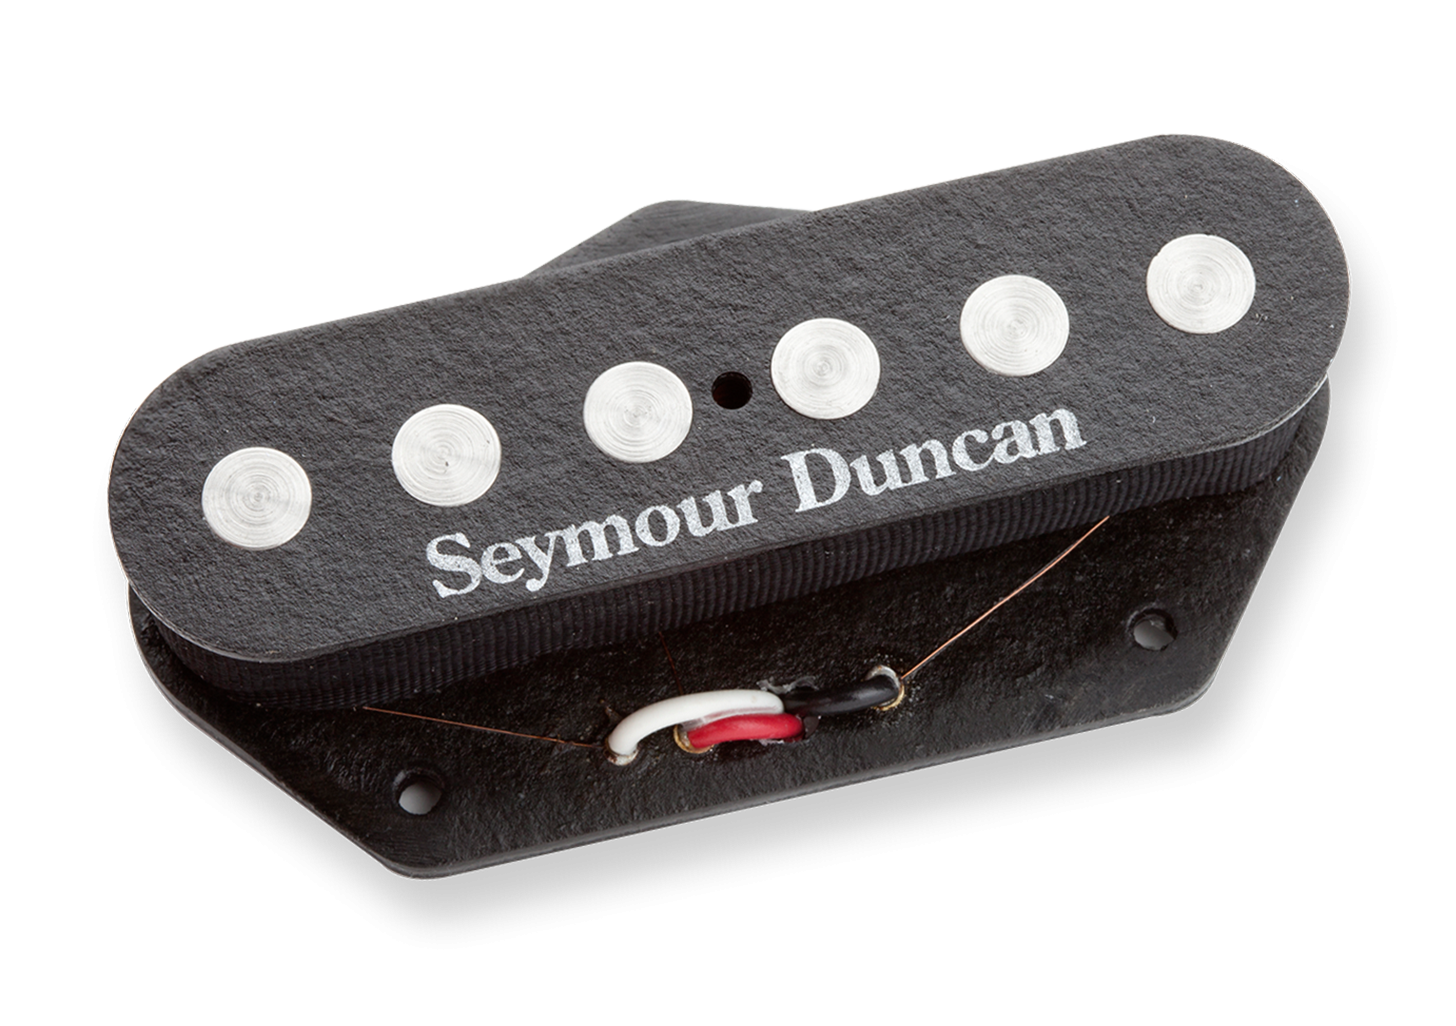 Seymour Duncan Quarter Pound Tele - STL-3T Tapped Bridge